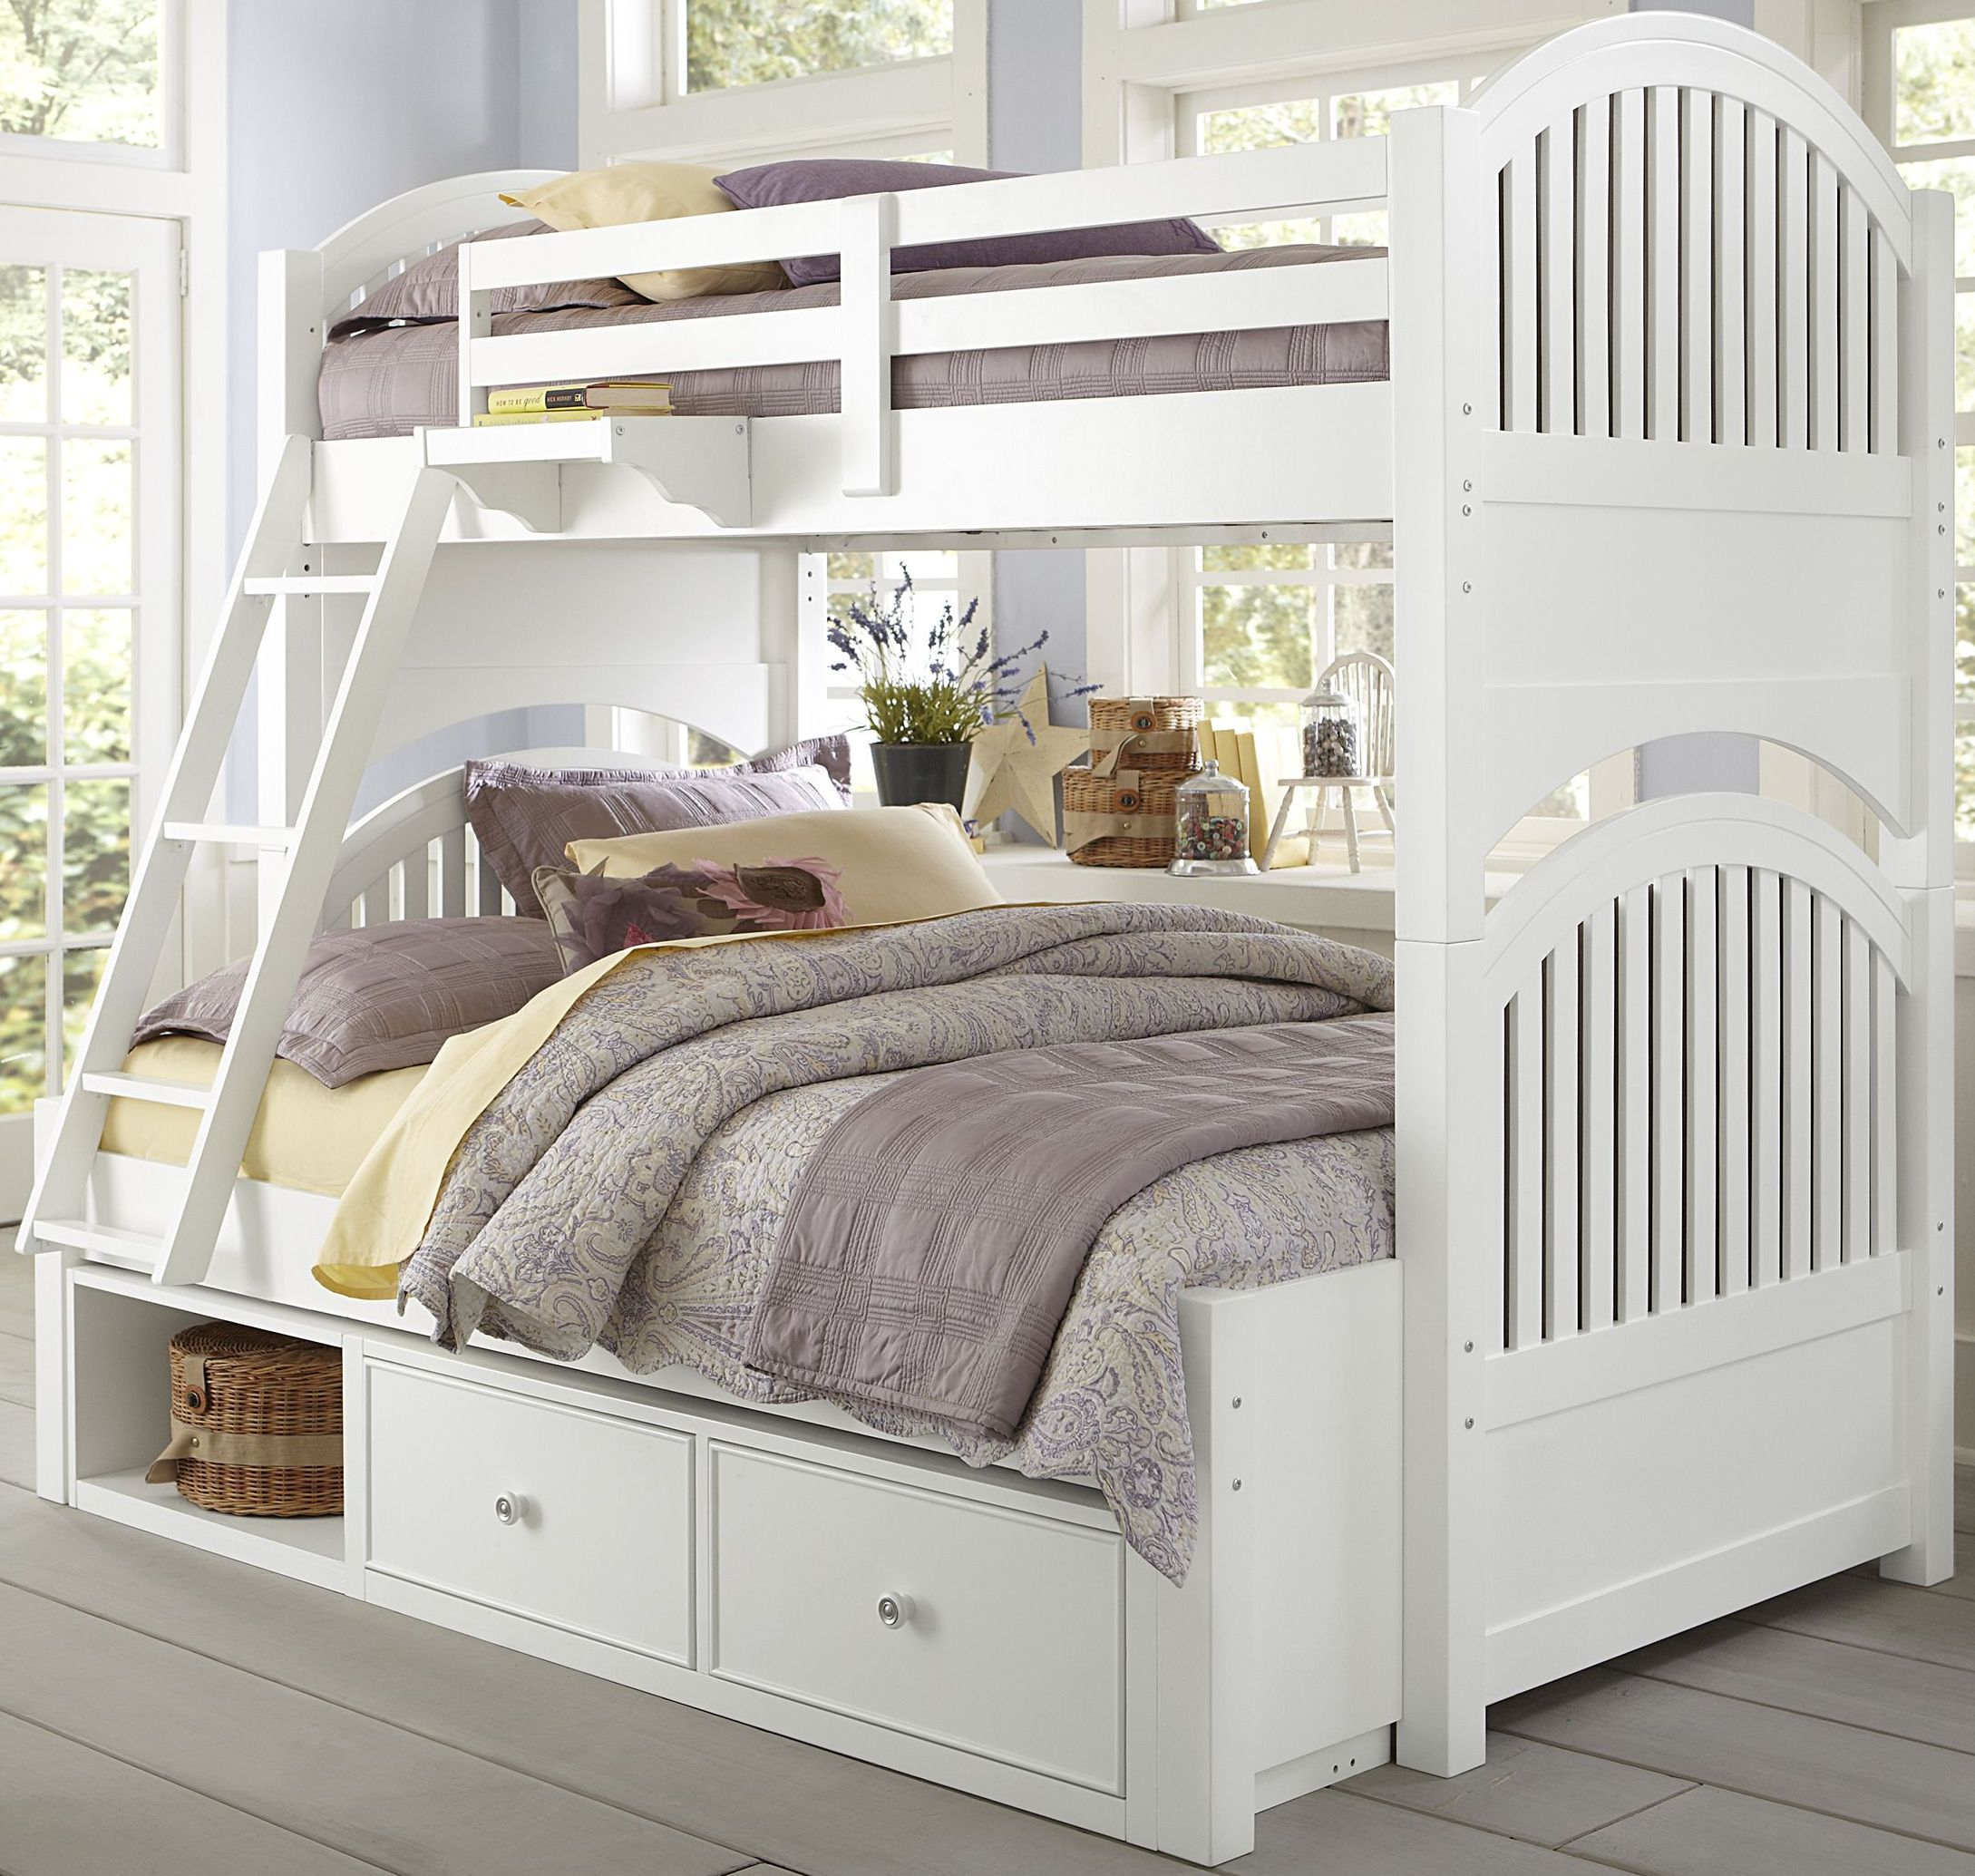 Lake House White Adrian Twin Over Full Bunk Bed With Storage 2段